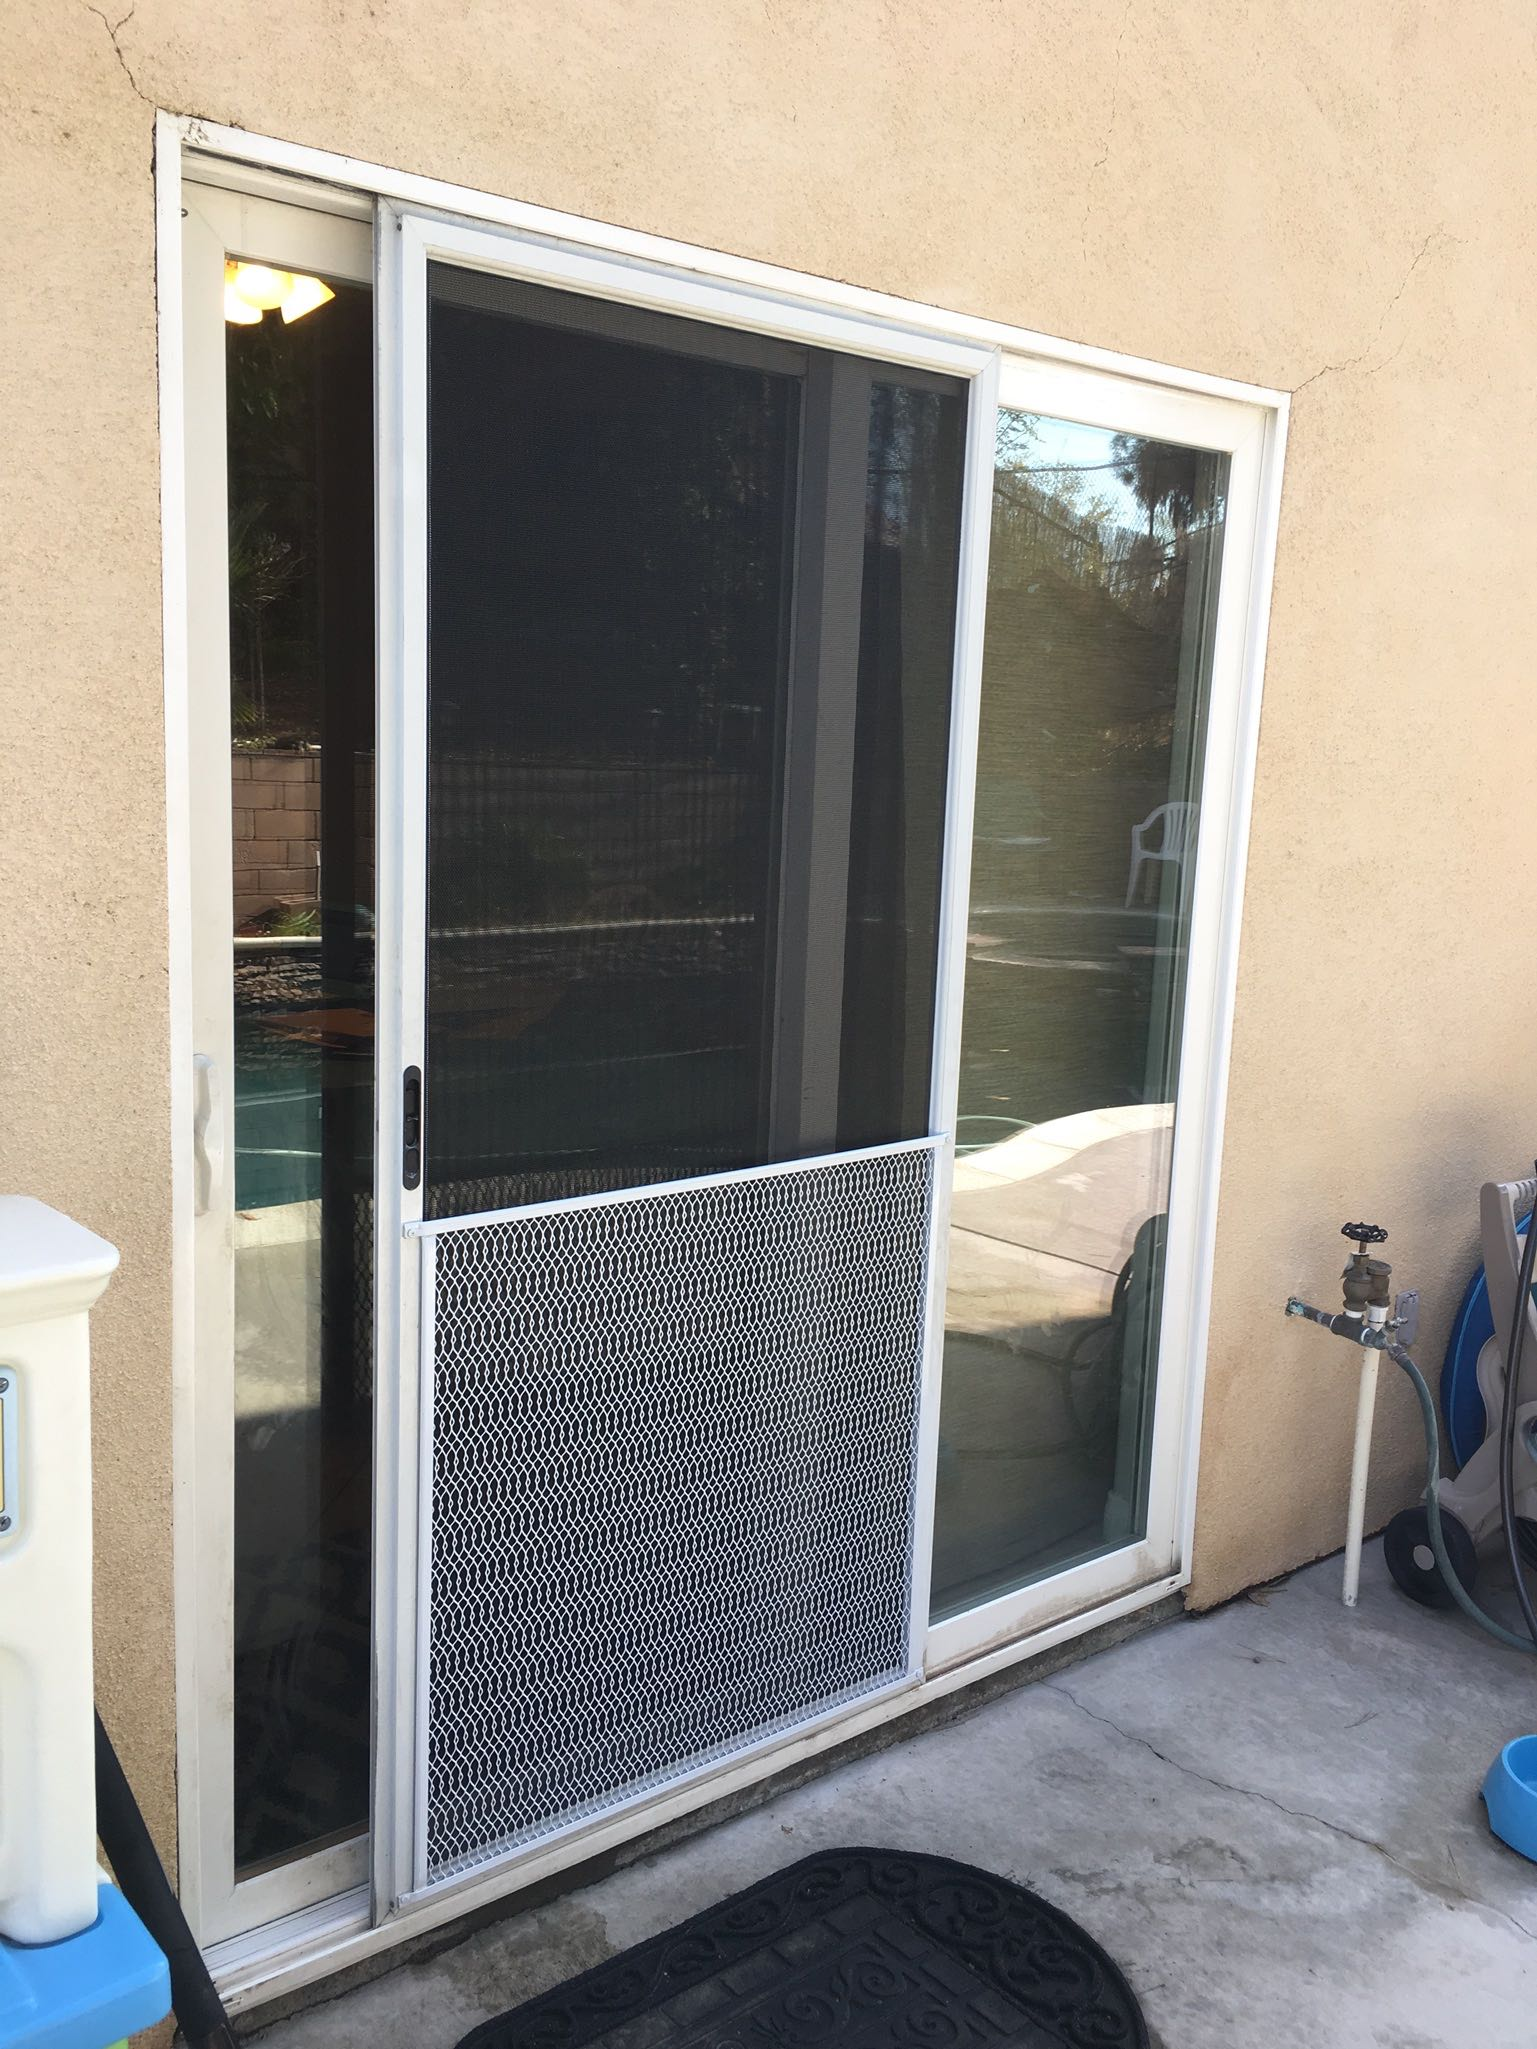 sliding available replace environment screen repair stainless ocean we and doors with for properties dbldrscreen have door steel hardware